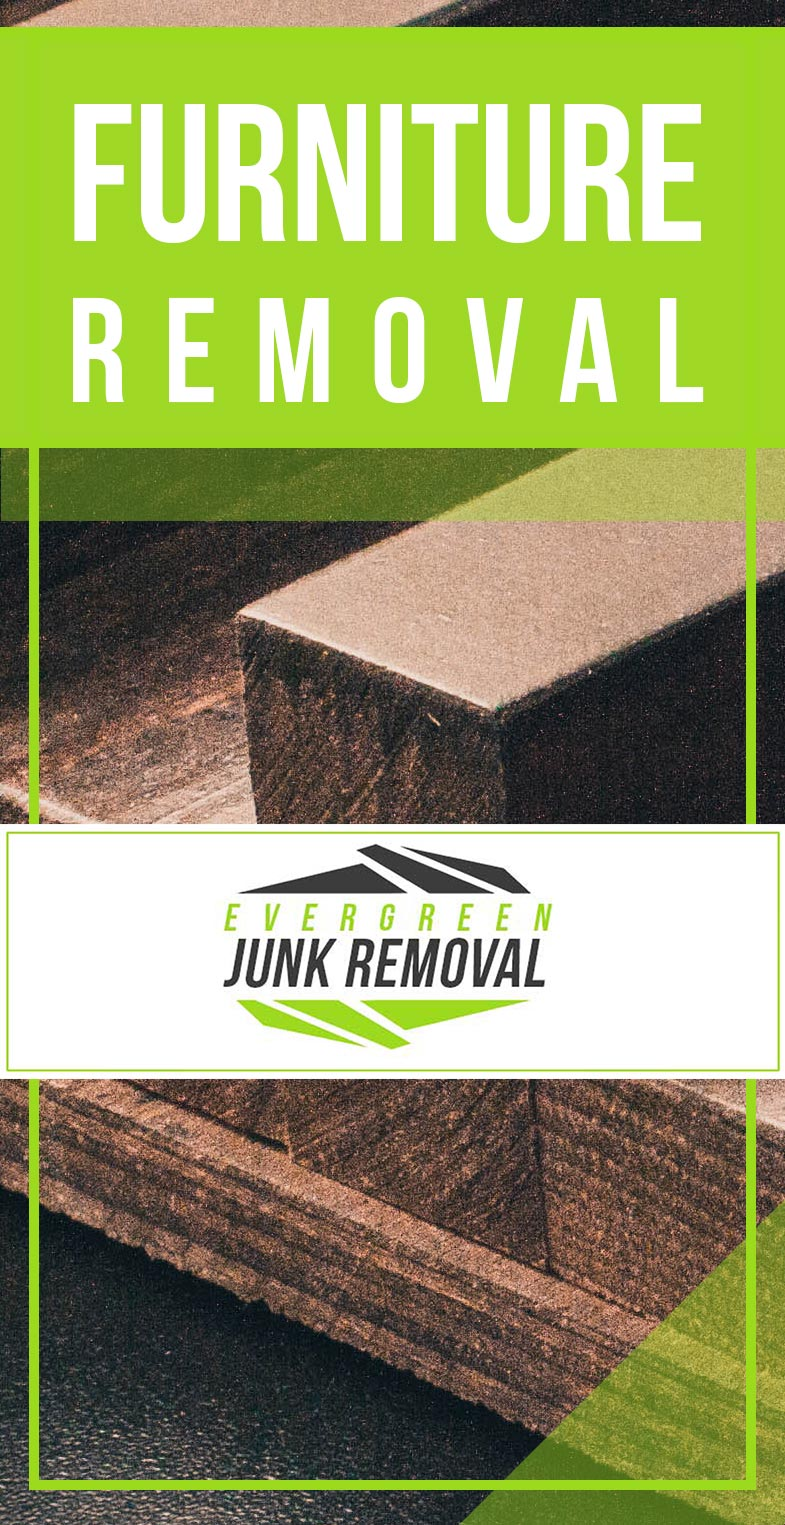 Orland Park Furniture Removal